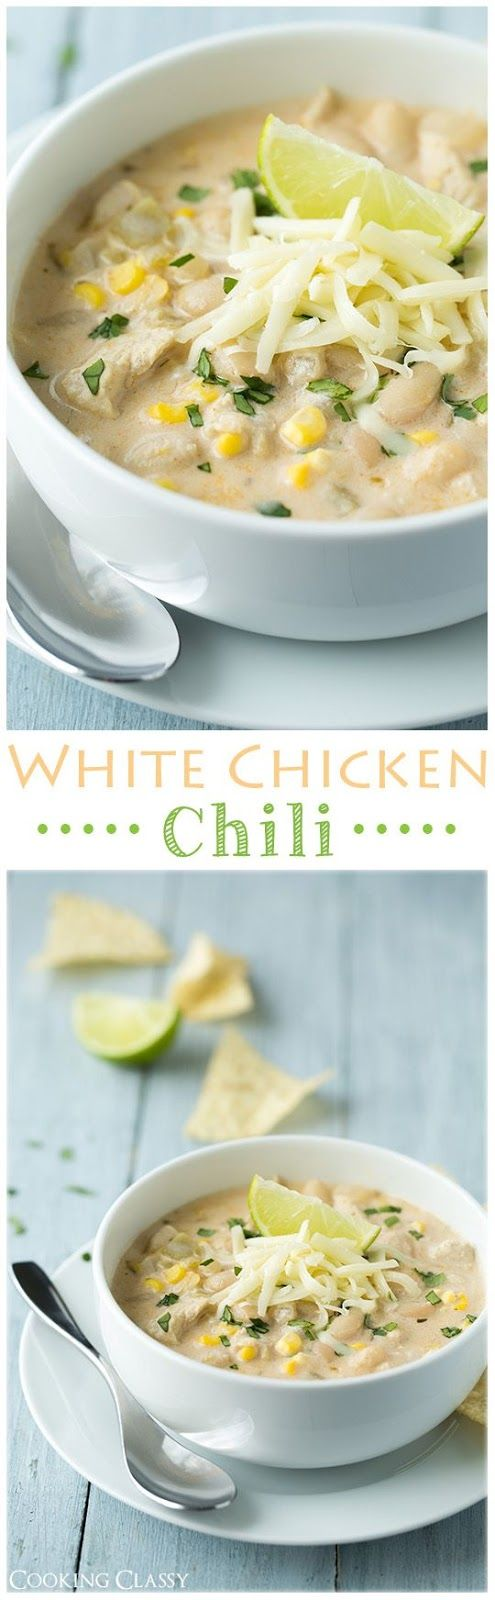 White Chicken Chili Soup Recipe | Cooking Classy - The BEST Homemade Soups Recipes - Easy, Quick and Yummy Lunch and Dinner Family Favorites Meals Ideas